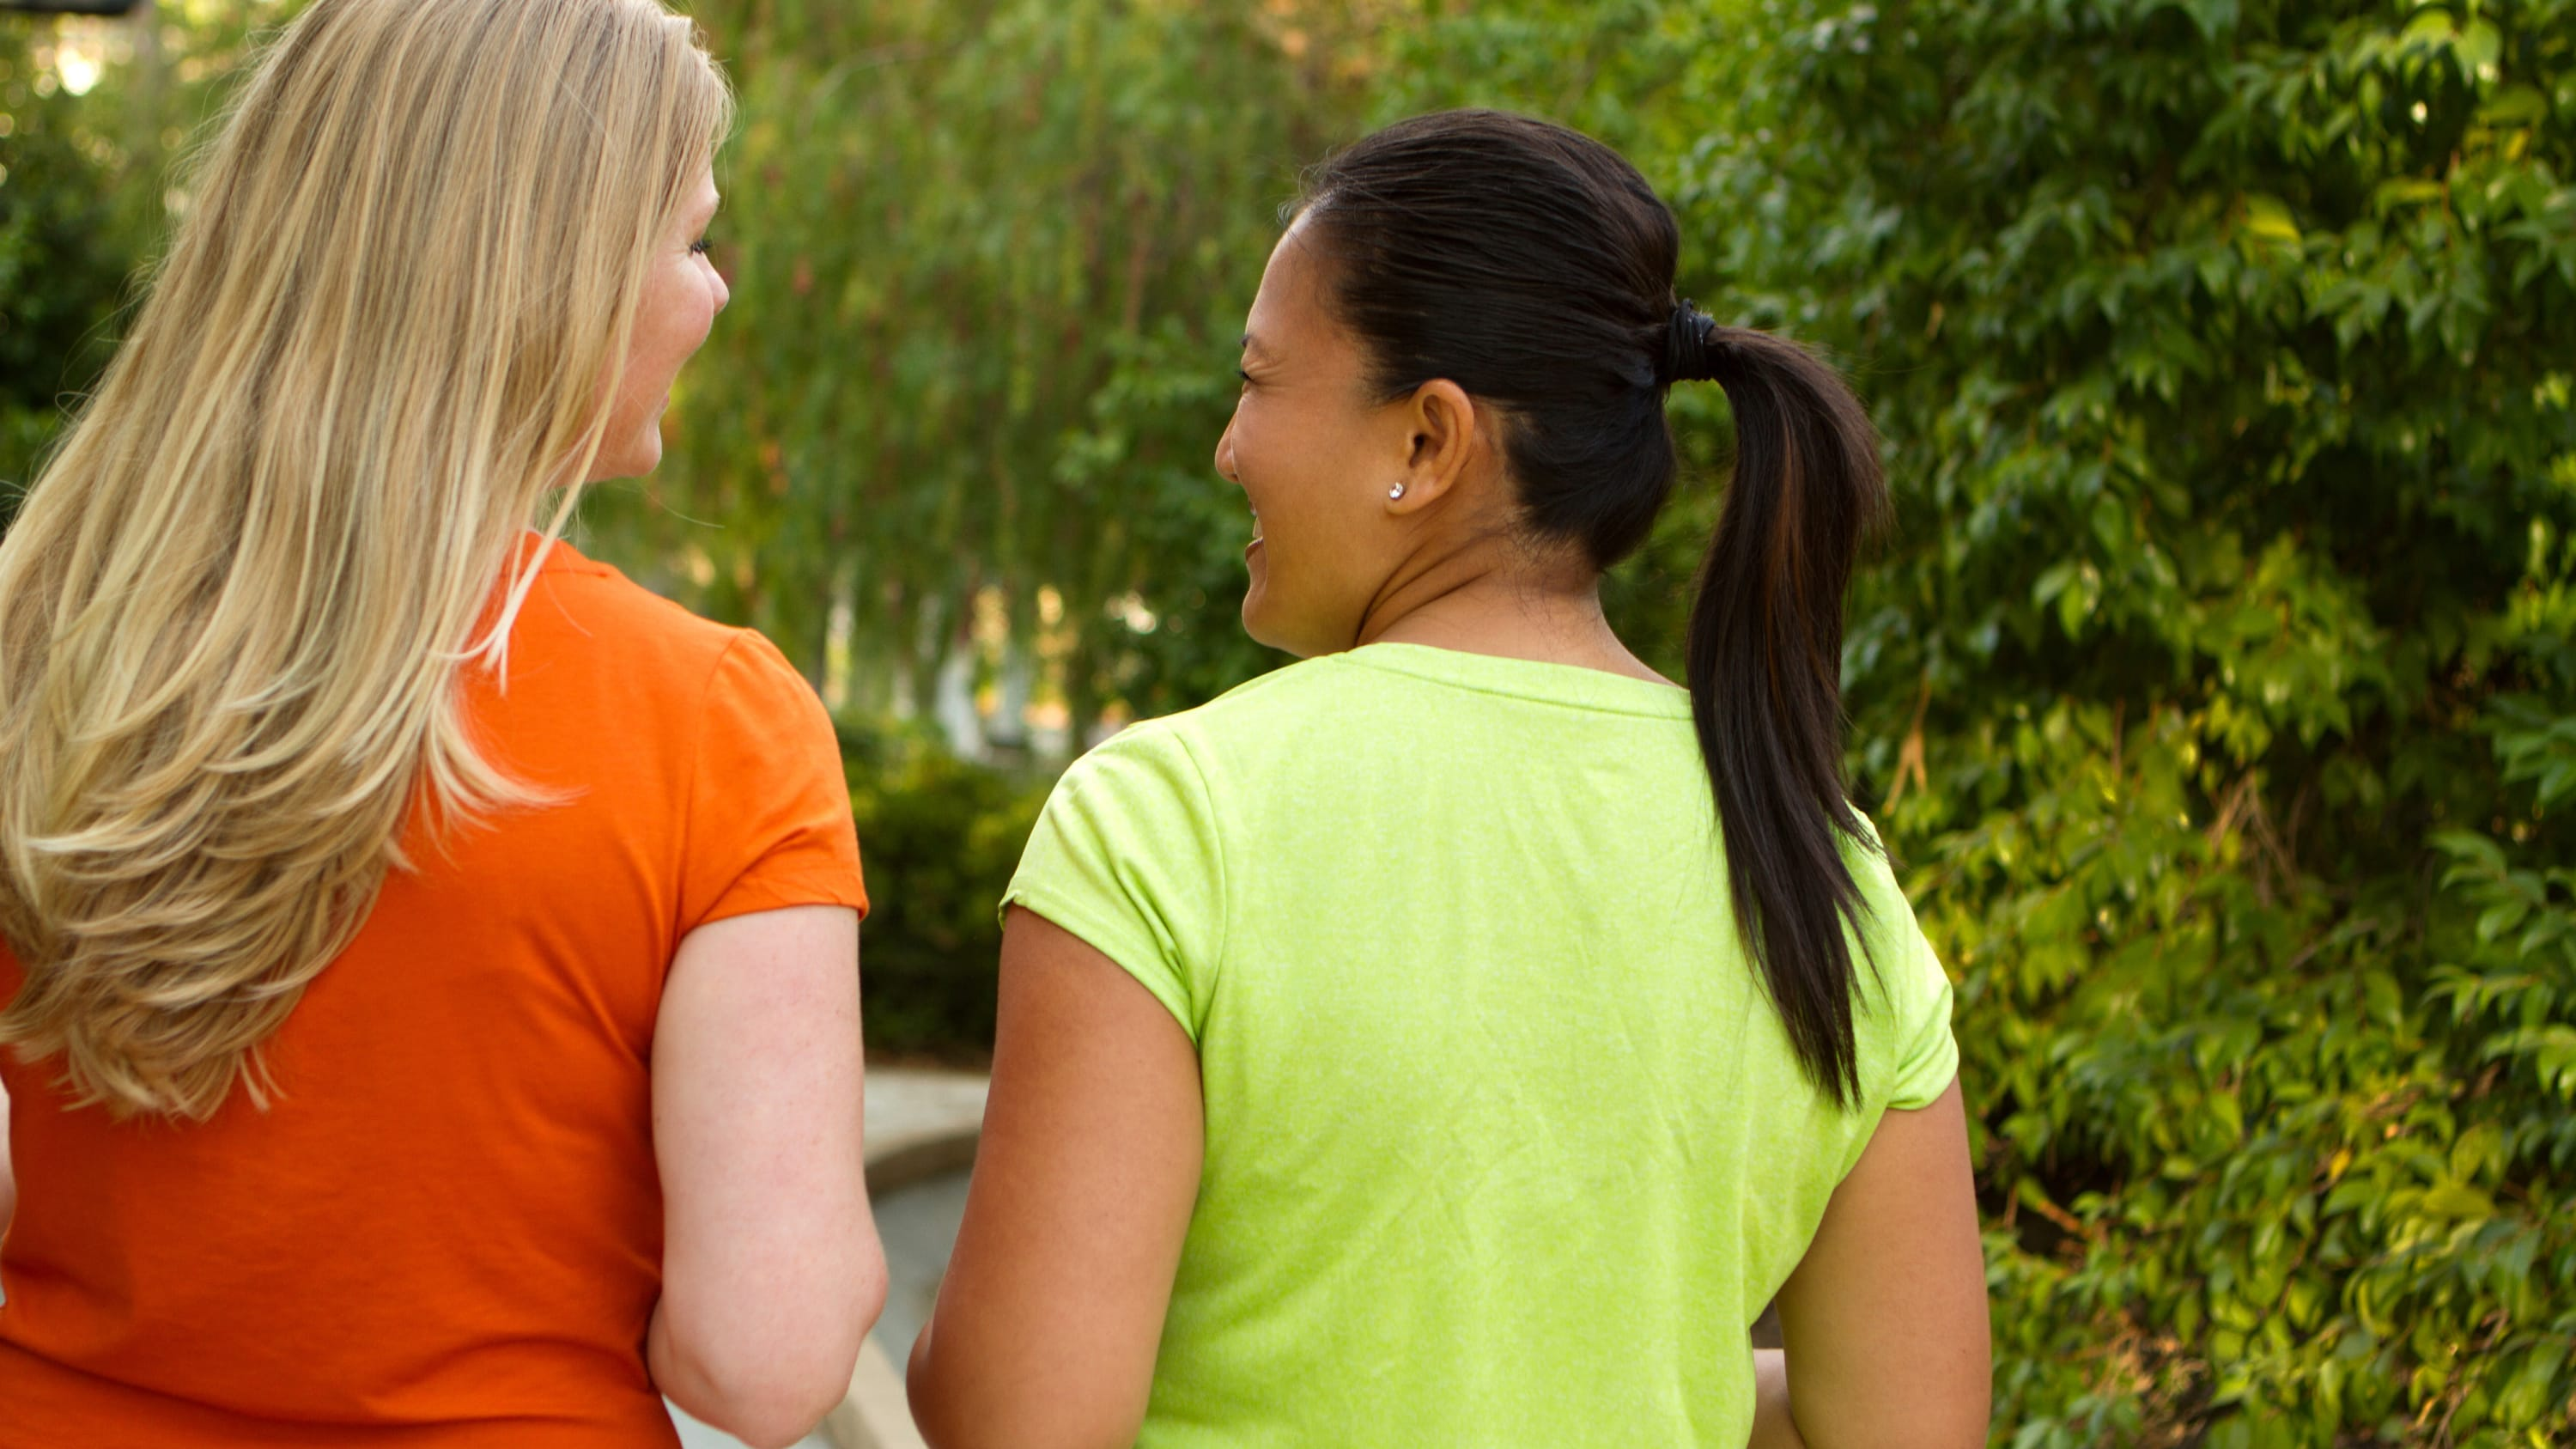 Two women are walking together, knowing that healthy habits can help them avoid heart disease.